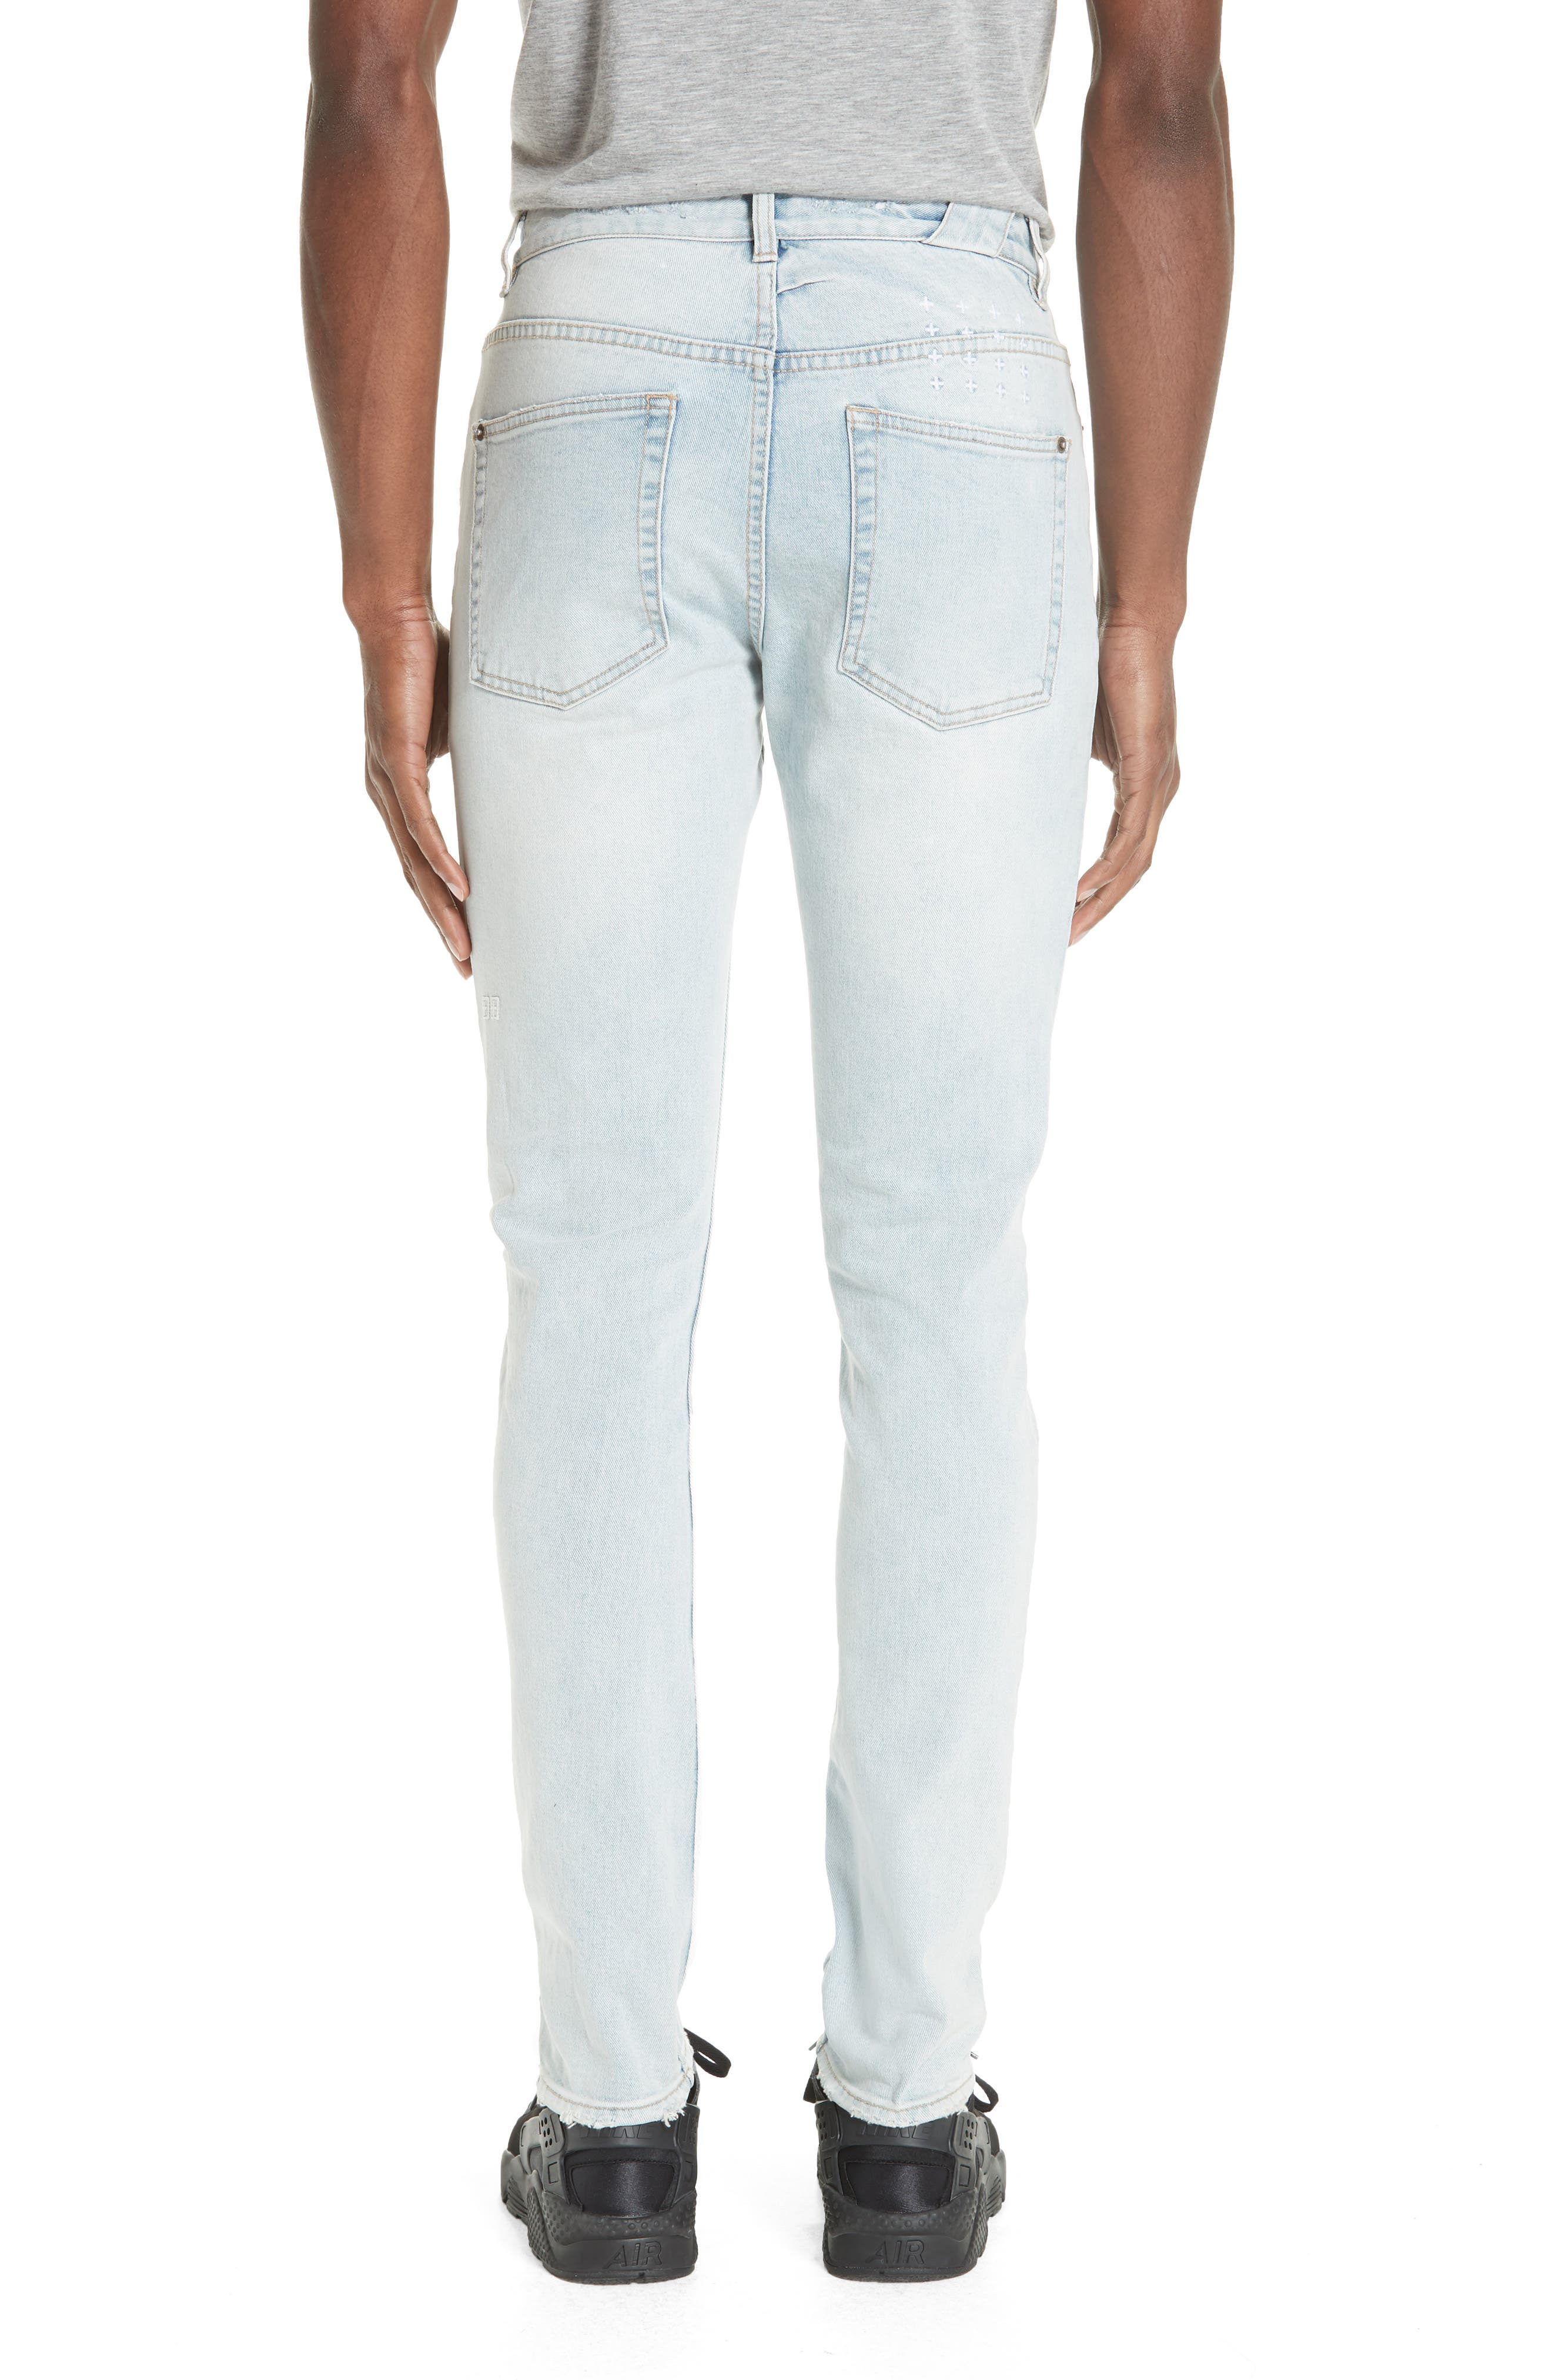 Chitch Chillz Skinny Fit Jeans,                             Alternate thumbnail 2, color,                             450